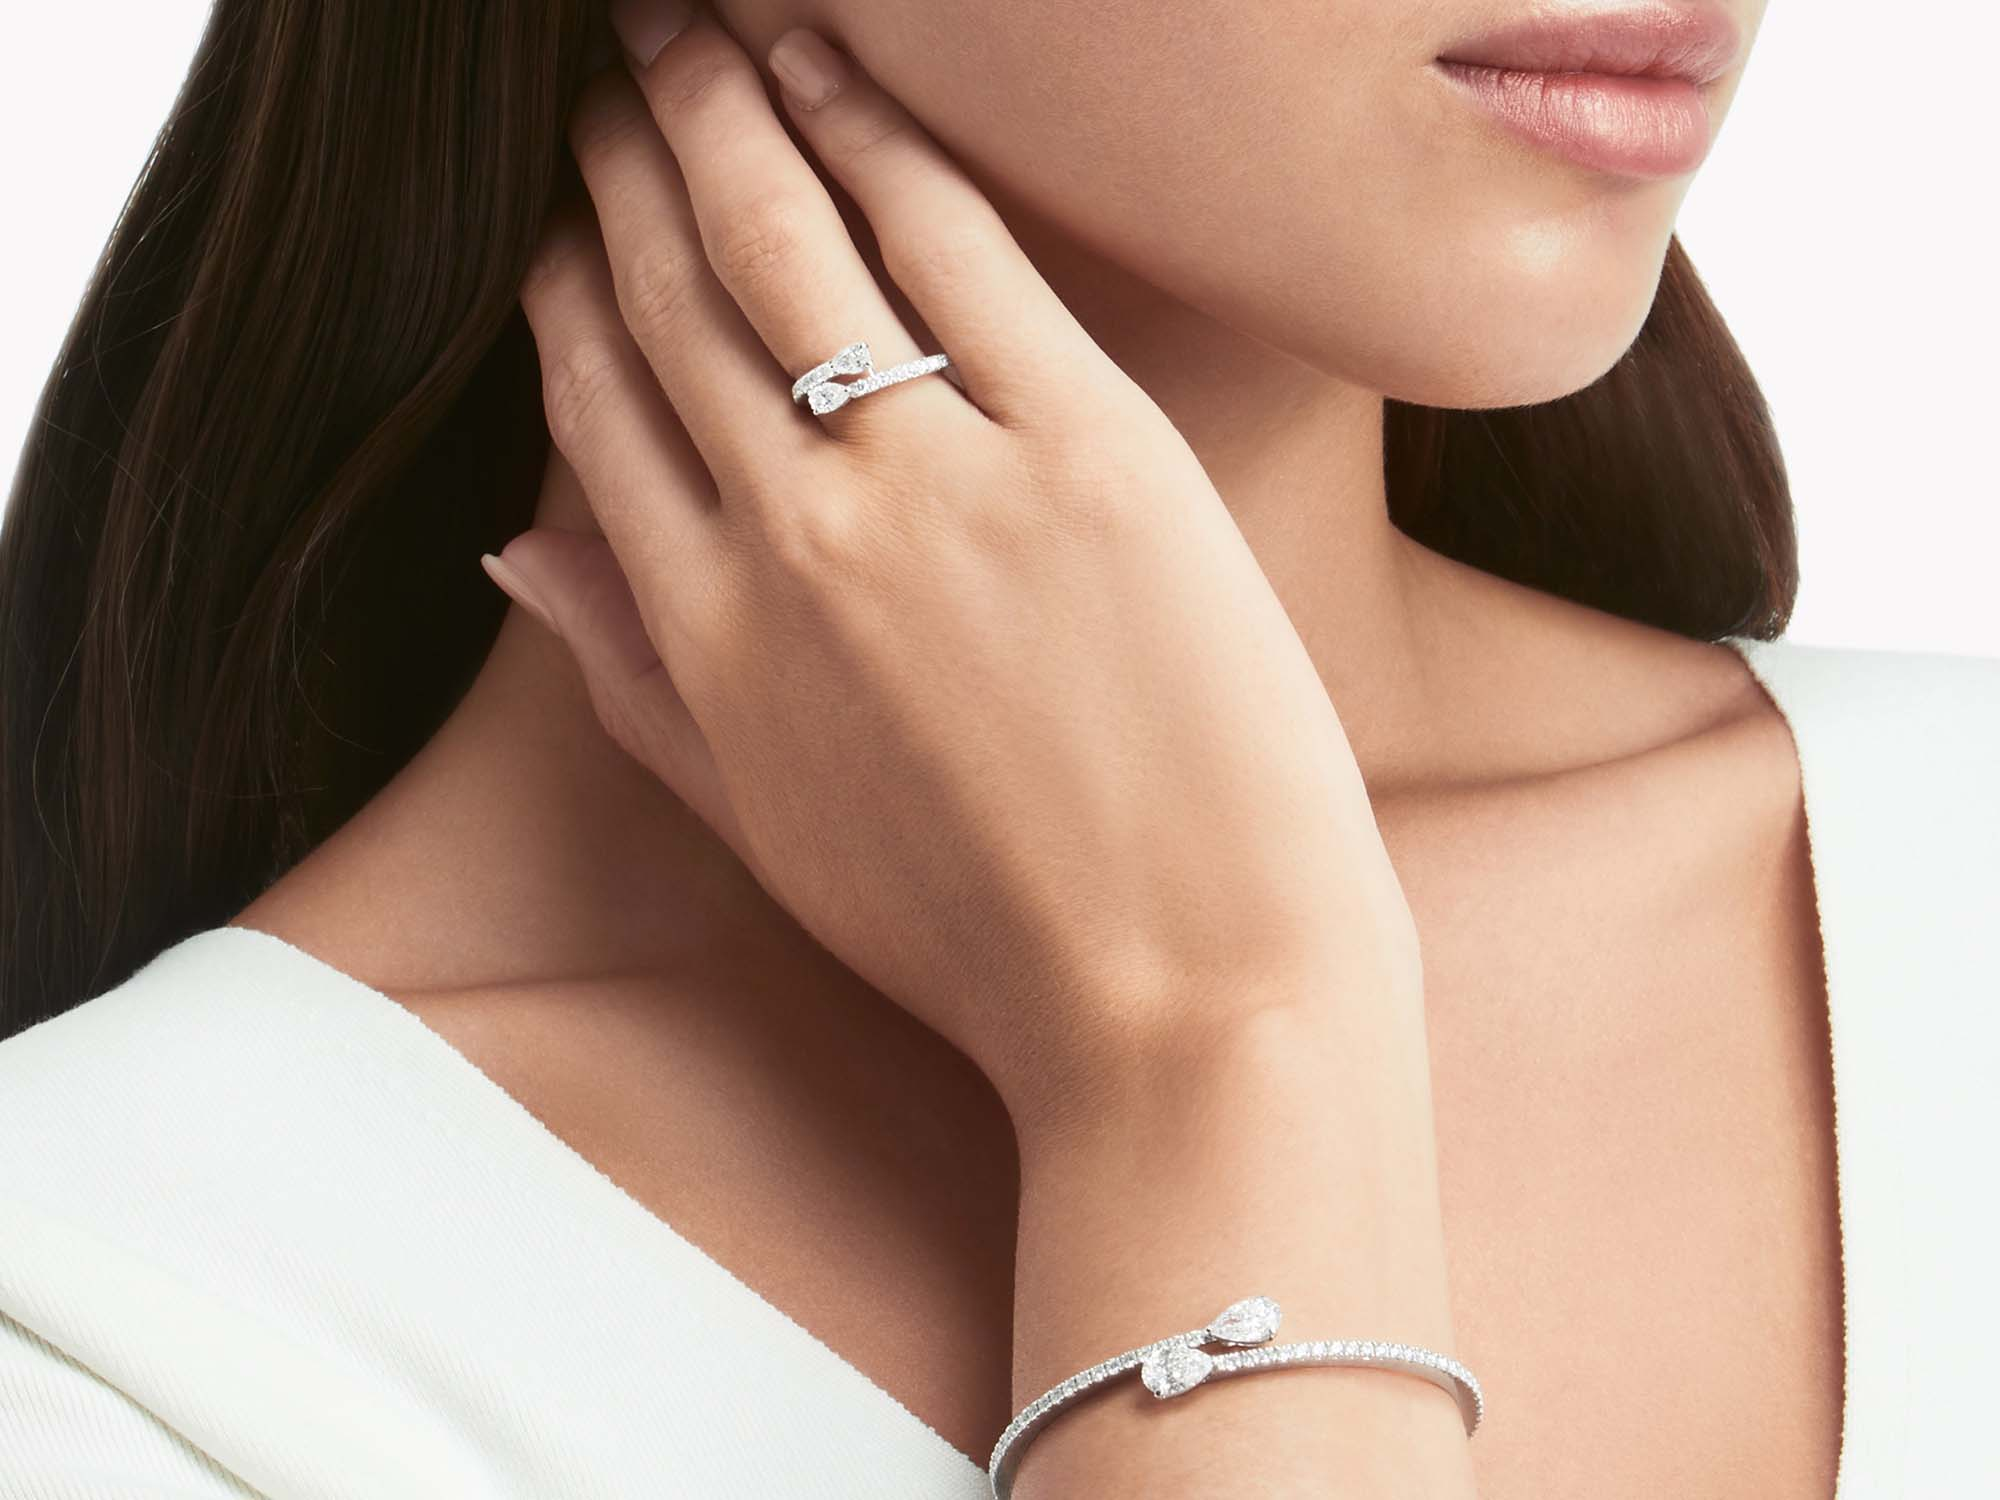 Model wearing Graff Duet bracelet and Graff Duet ring from the Graff Duet jewellery collection